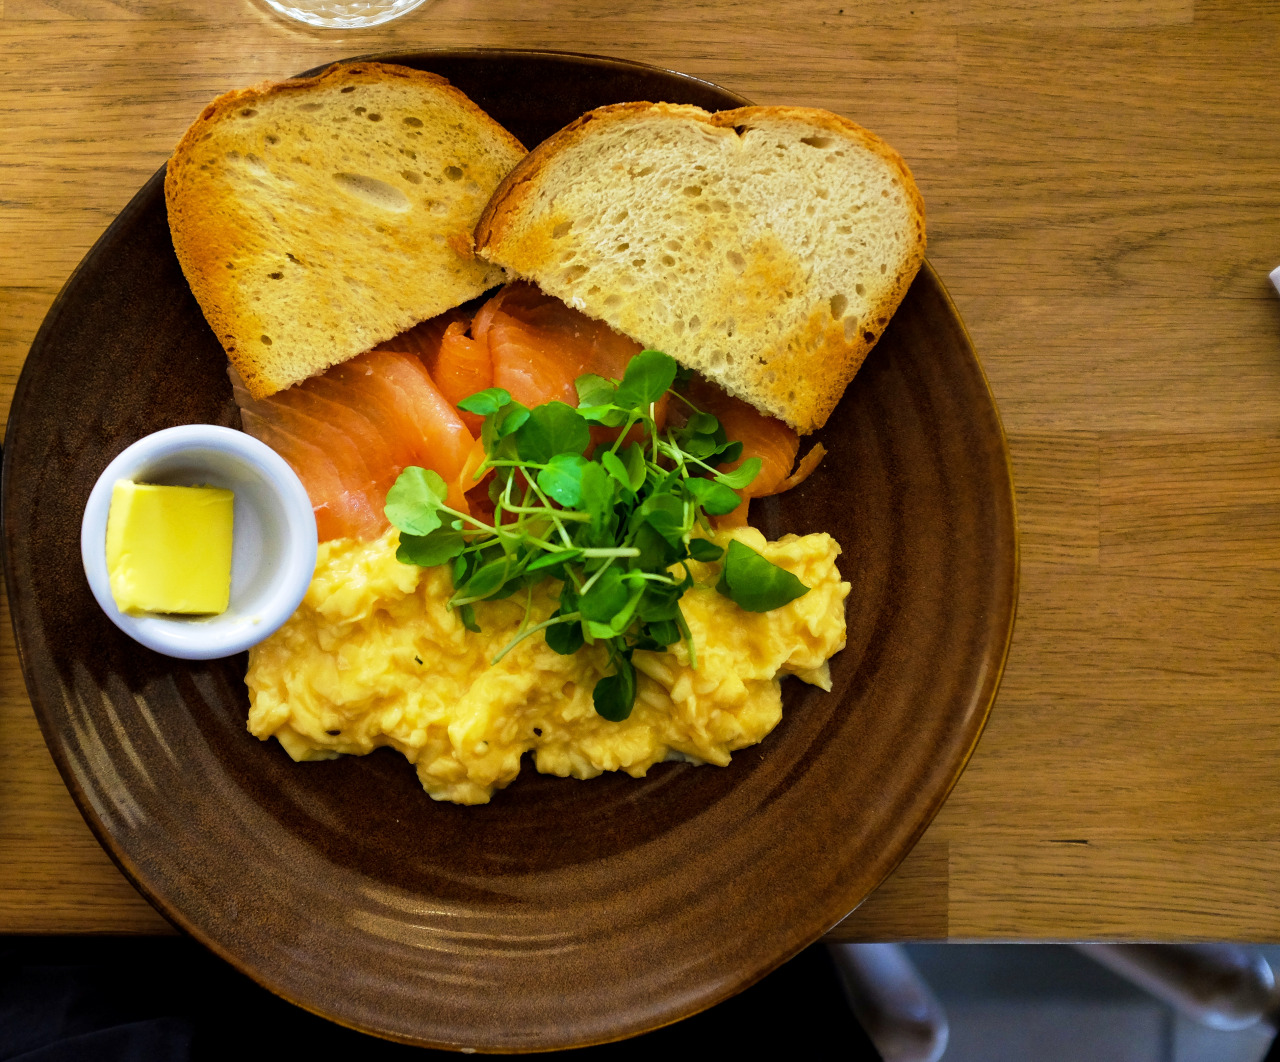 Post Run - Forge & Co 2 - Smoked salmon and scrambled eggs